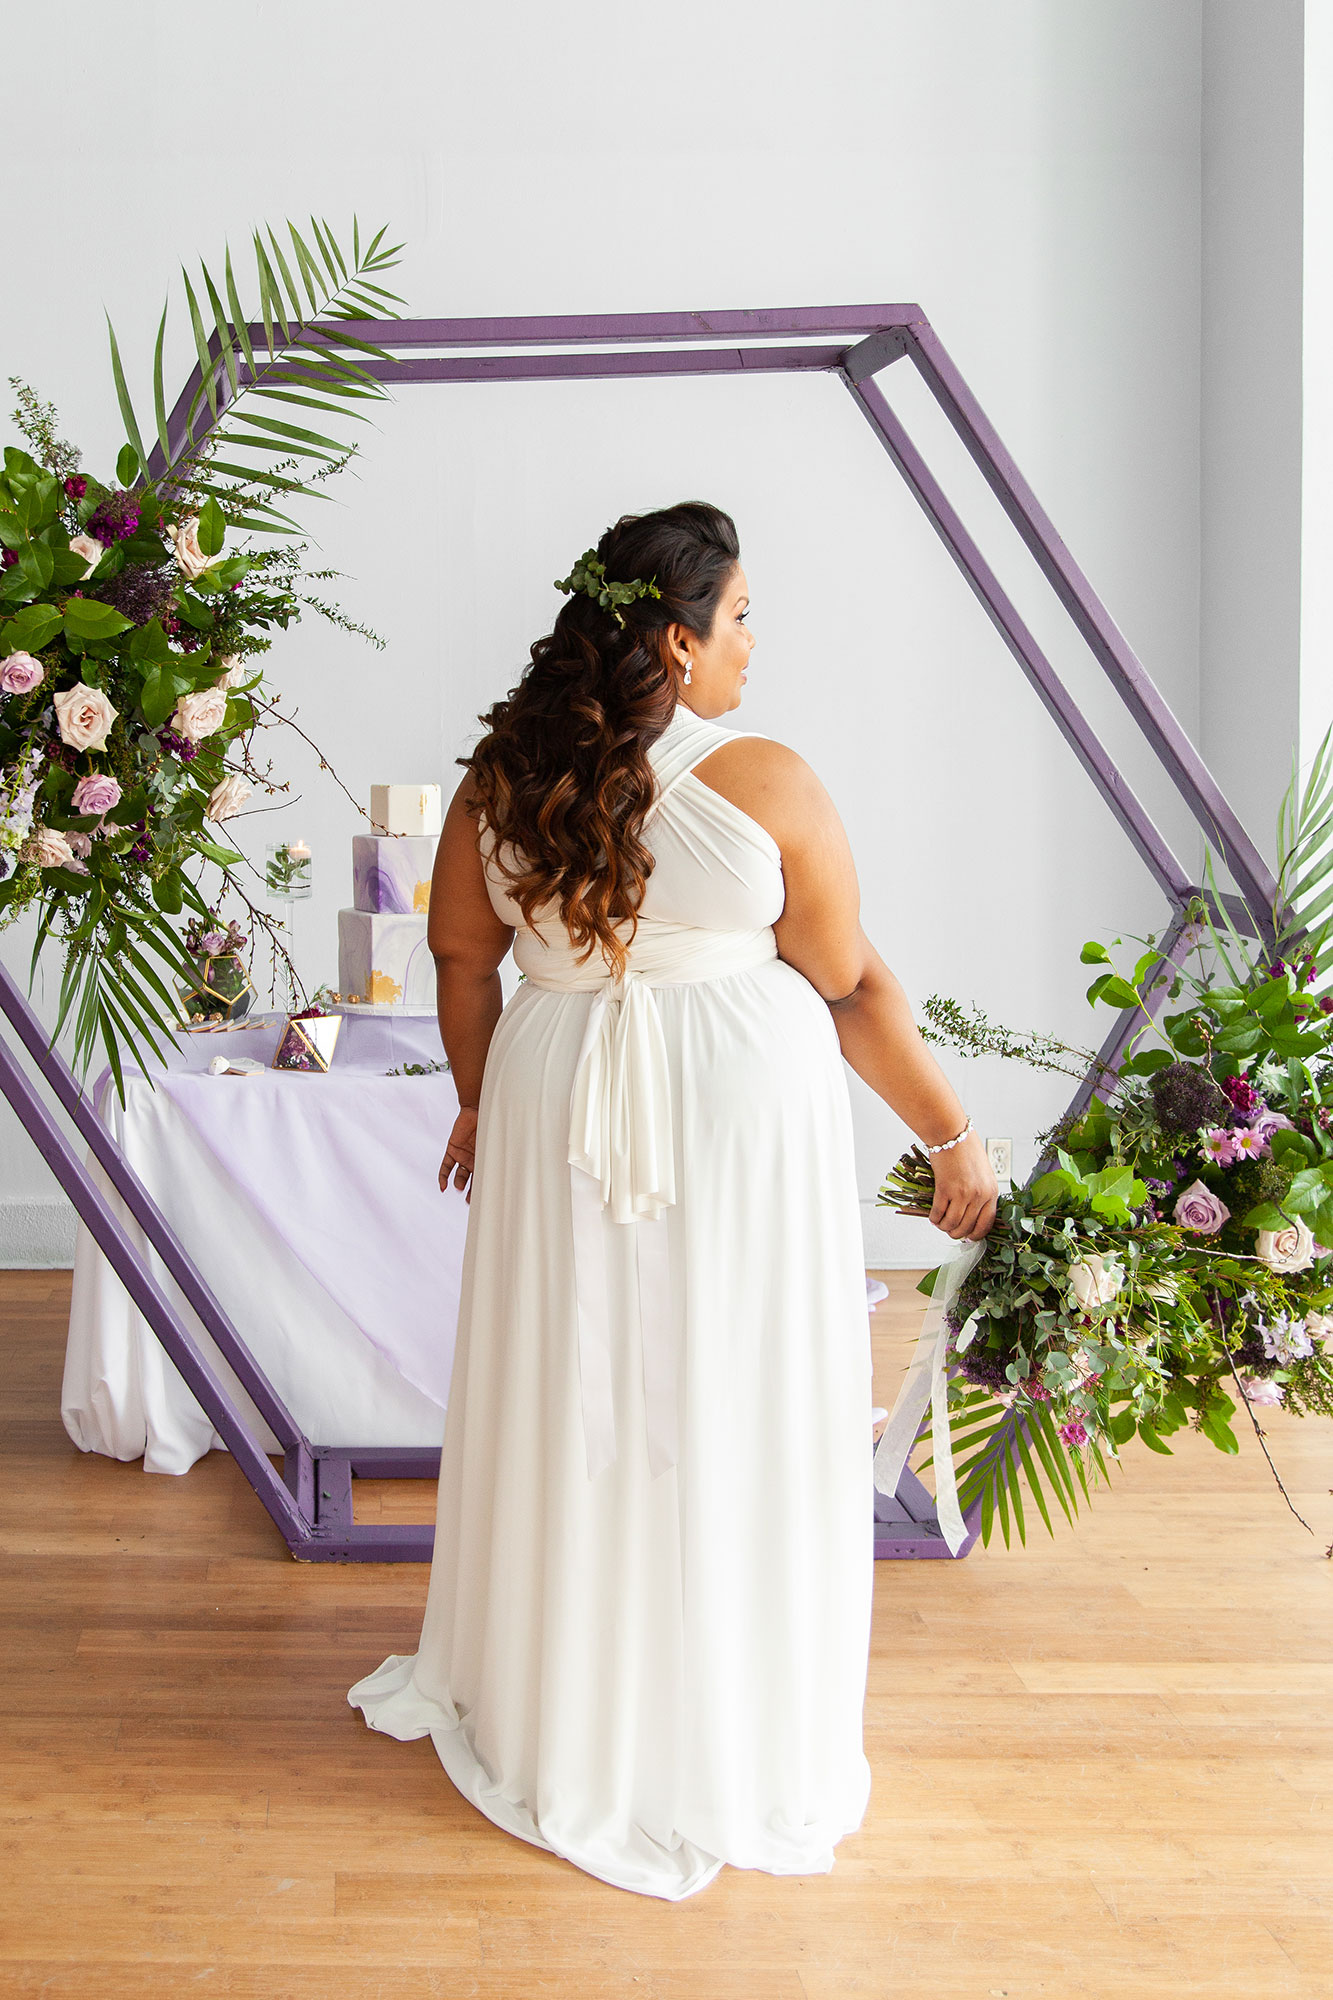 Henkaa fall wedding collection with bride in white showing back of dress while holding bouquet